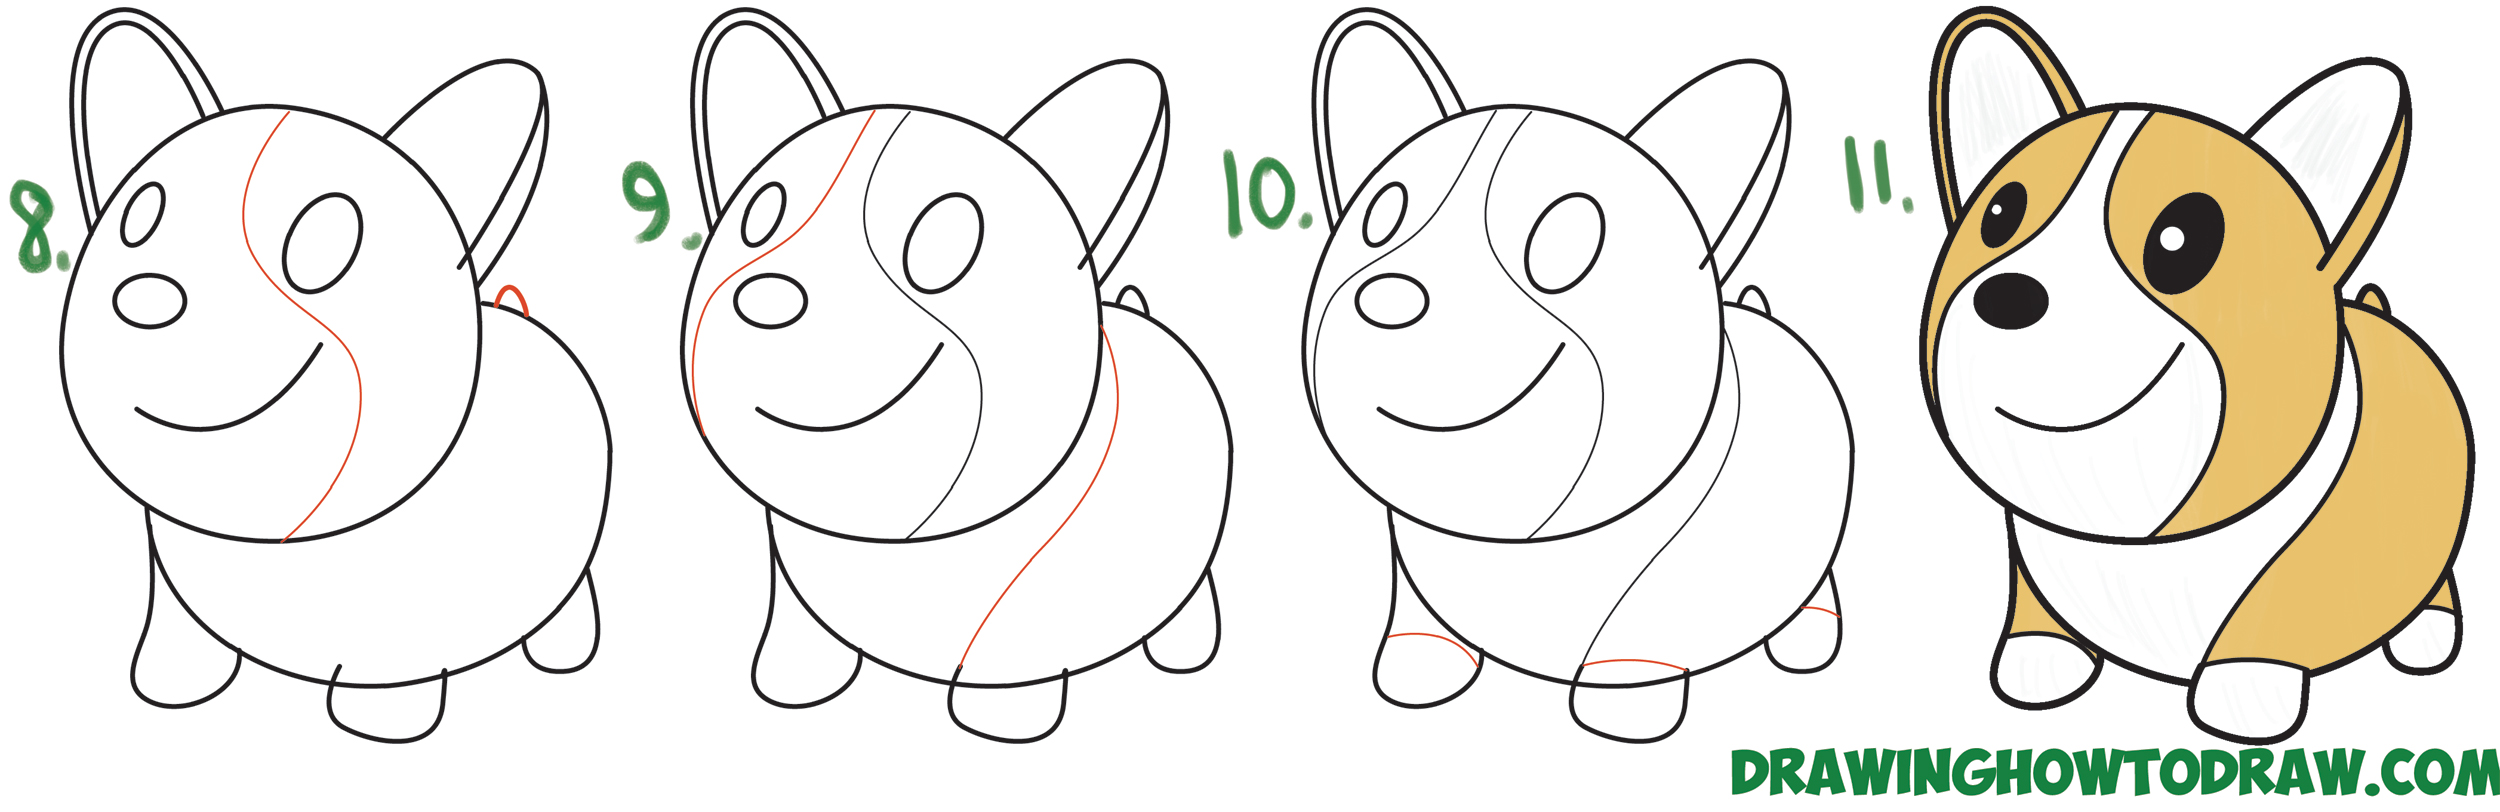 Easy Step By Step Dog Drawing At Getdrawings Com Free For Personal